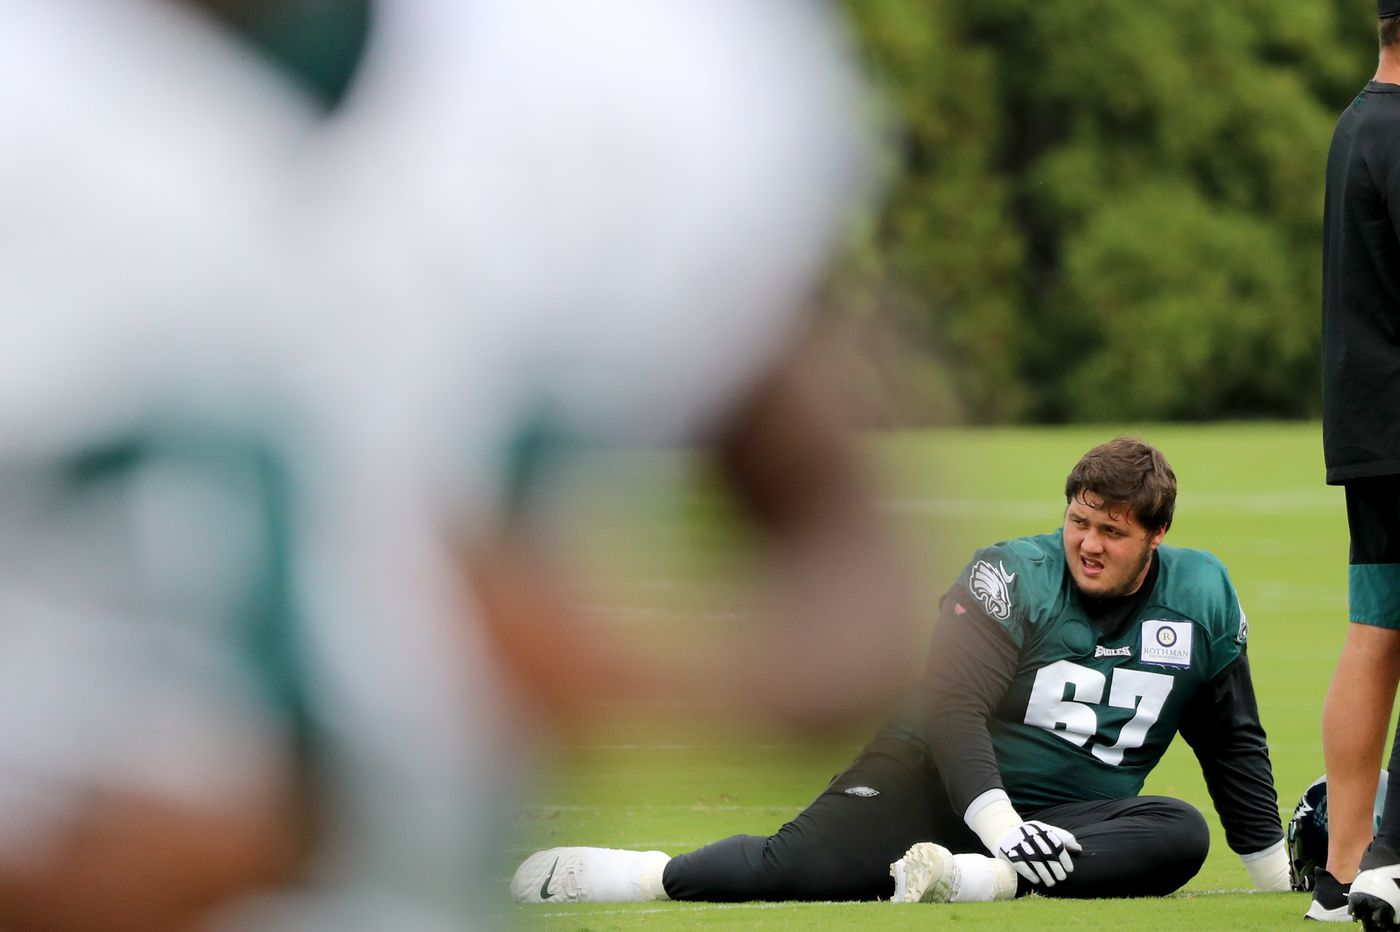 Nate Herbig can't afford to drop his guard as he's an Eagles starter against Aaron Donald and the Rams